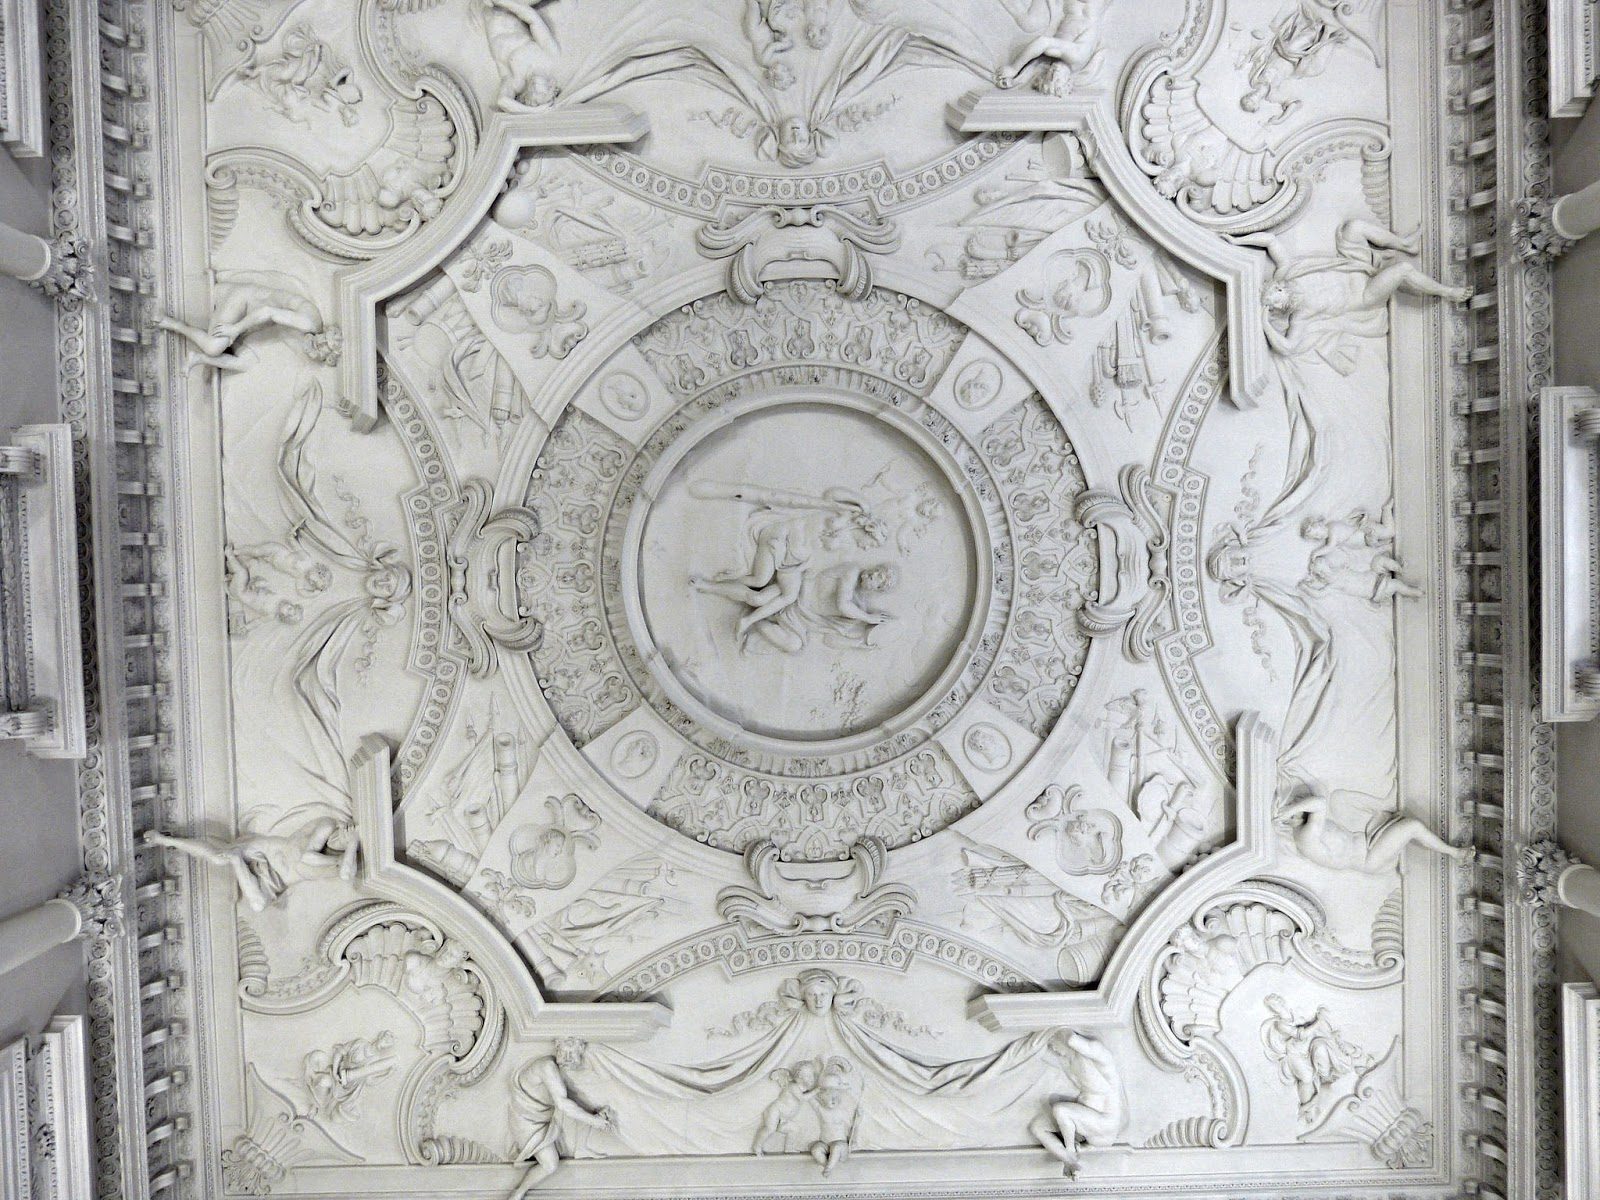 clandon-park-entrance-hall-ceiling